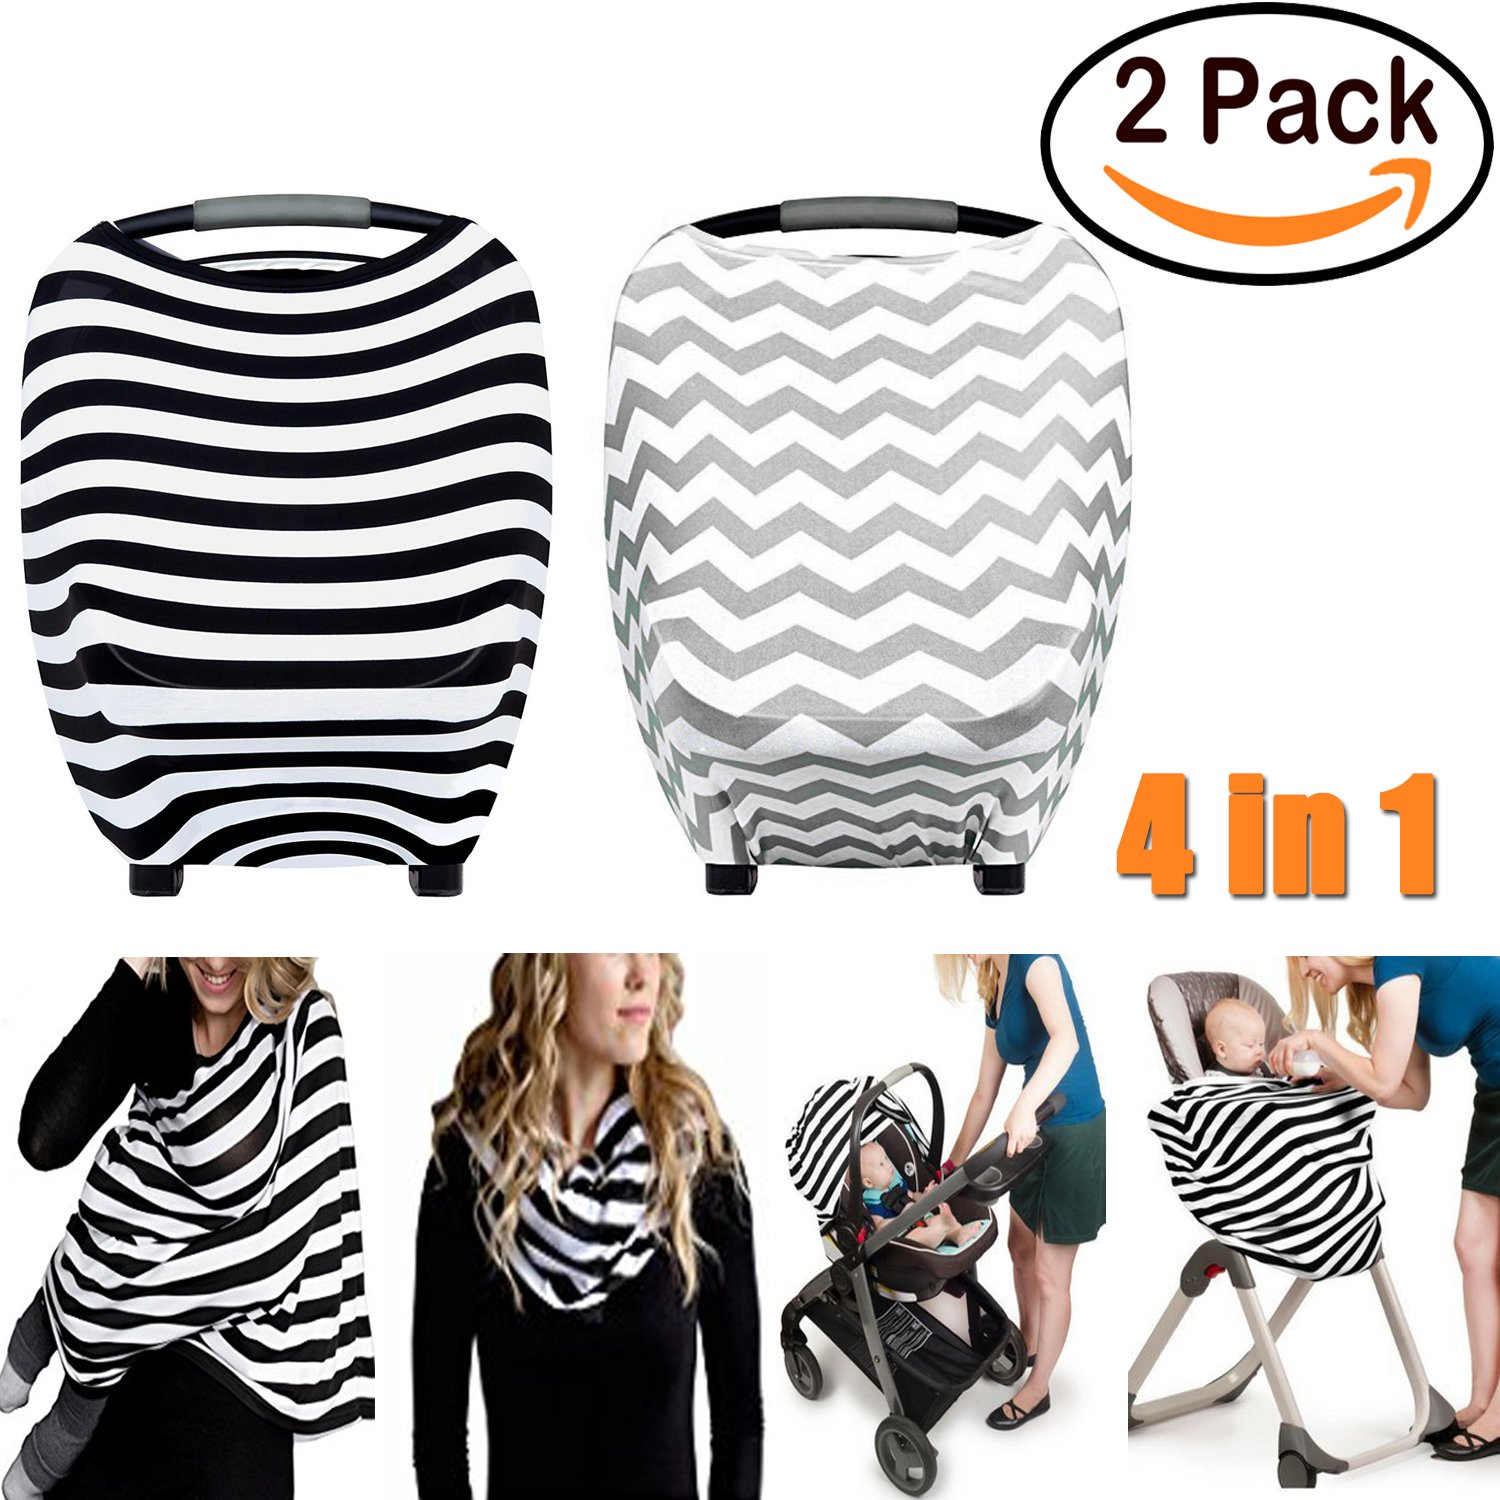 2 Pack Stretchy Multi Use Car Seat Canopy Shopping Nursing Breastfeeding Cover